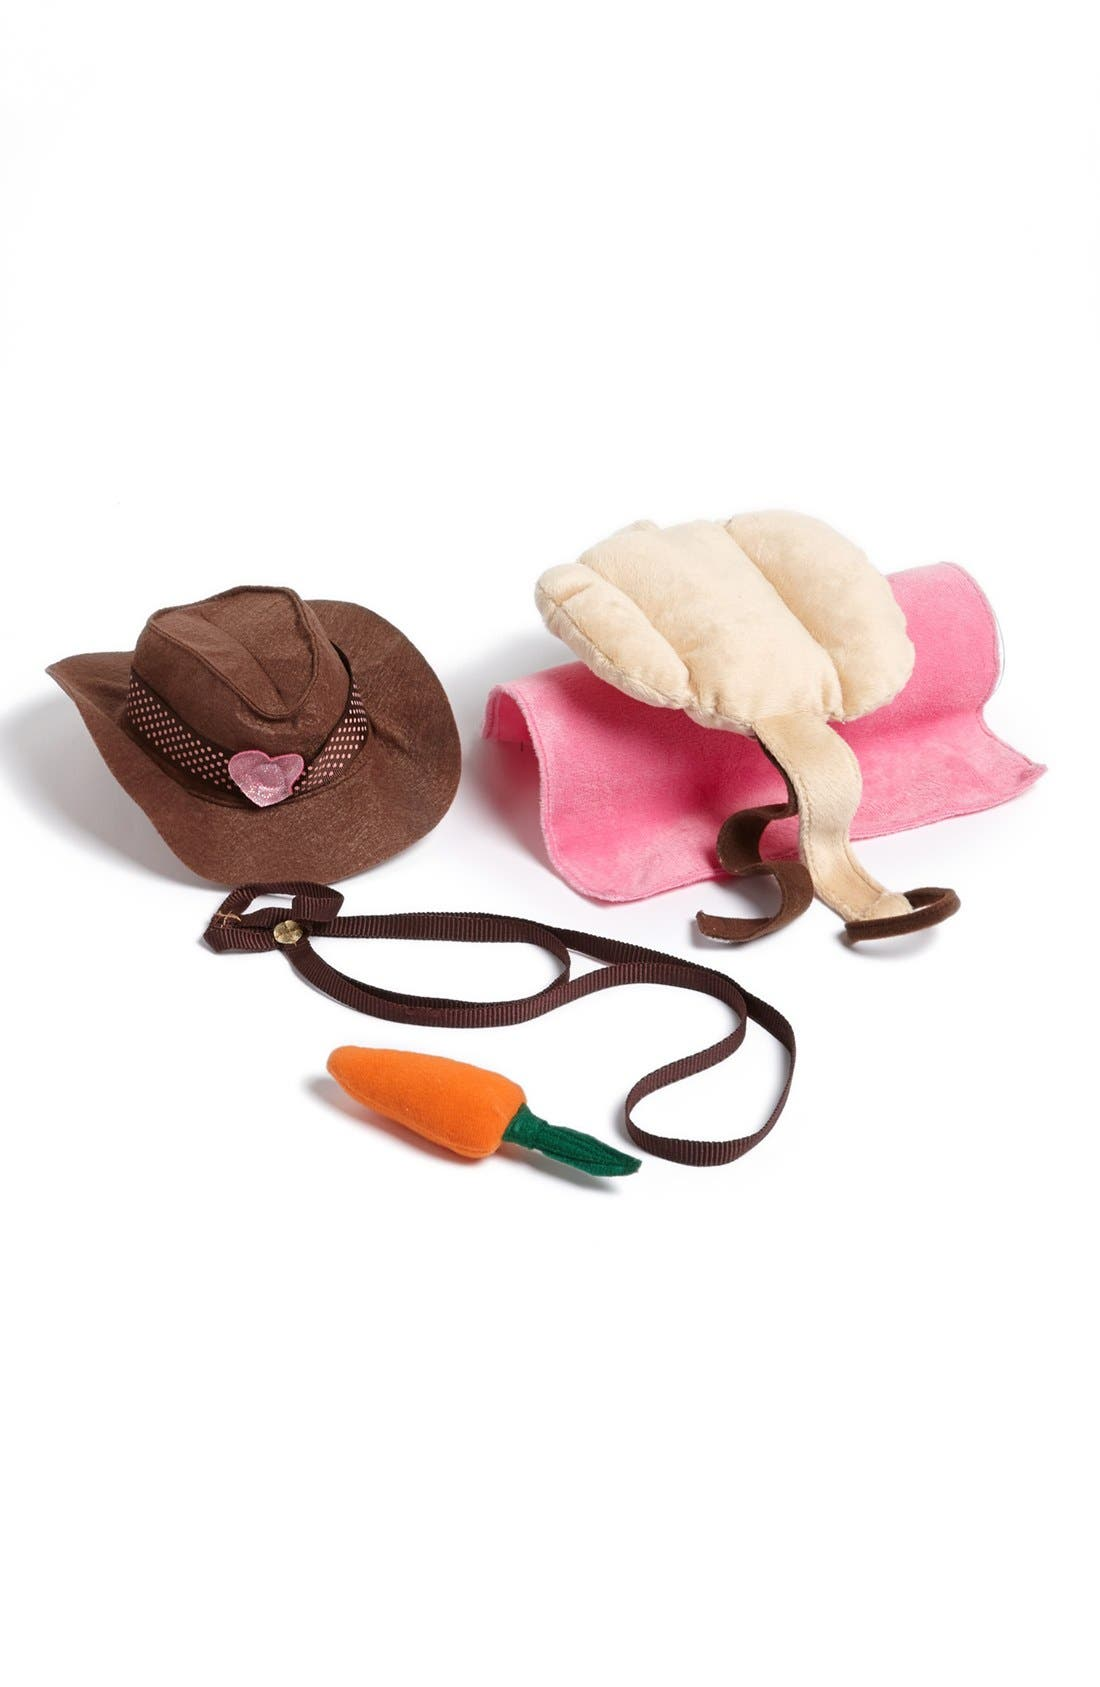 Main Image - Madame Alexander 'Cowgirl' Accessory Set